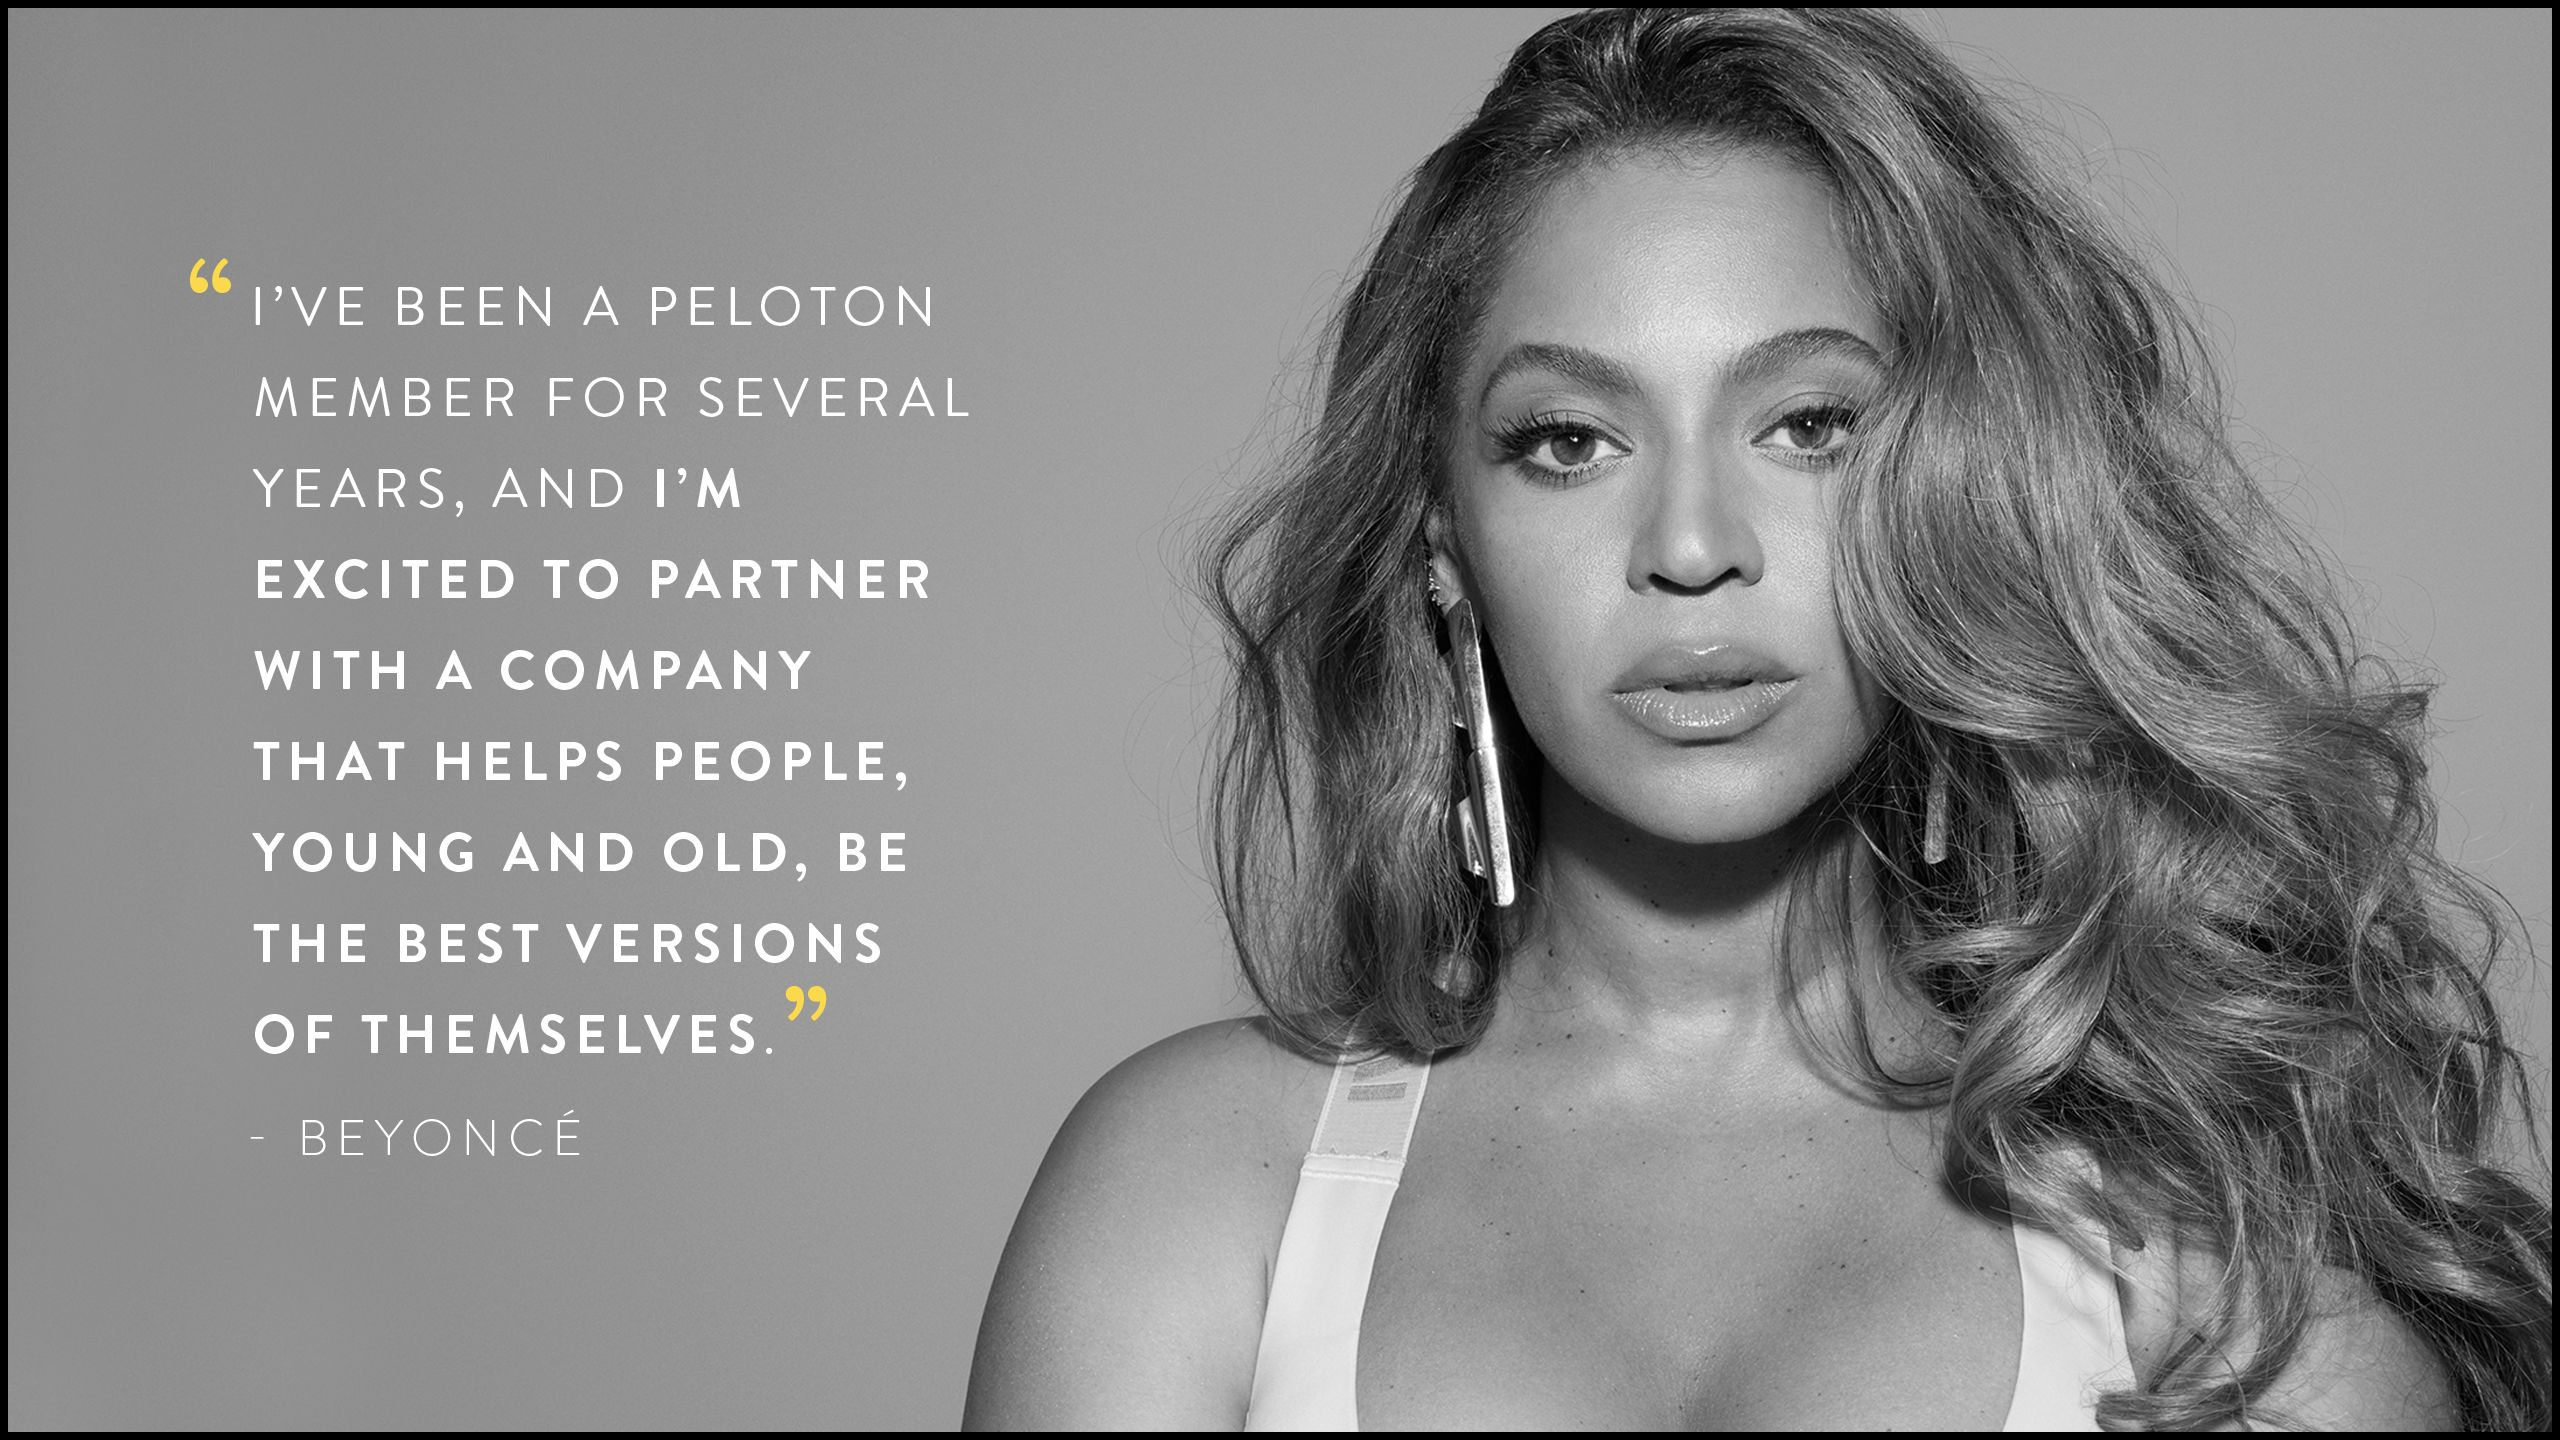 Beyoncé & Peloton Partner For The Beyoncé Artist Series Benefitting HBCU Students